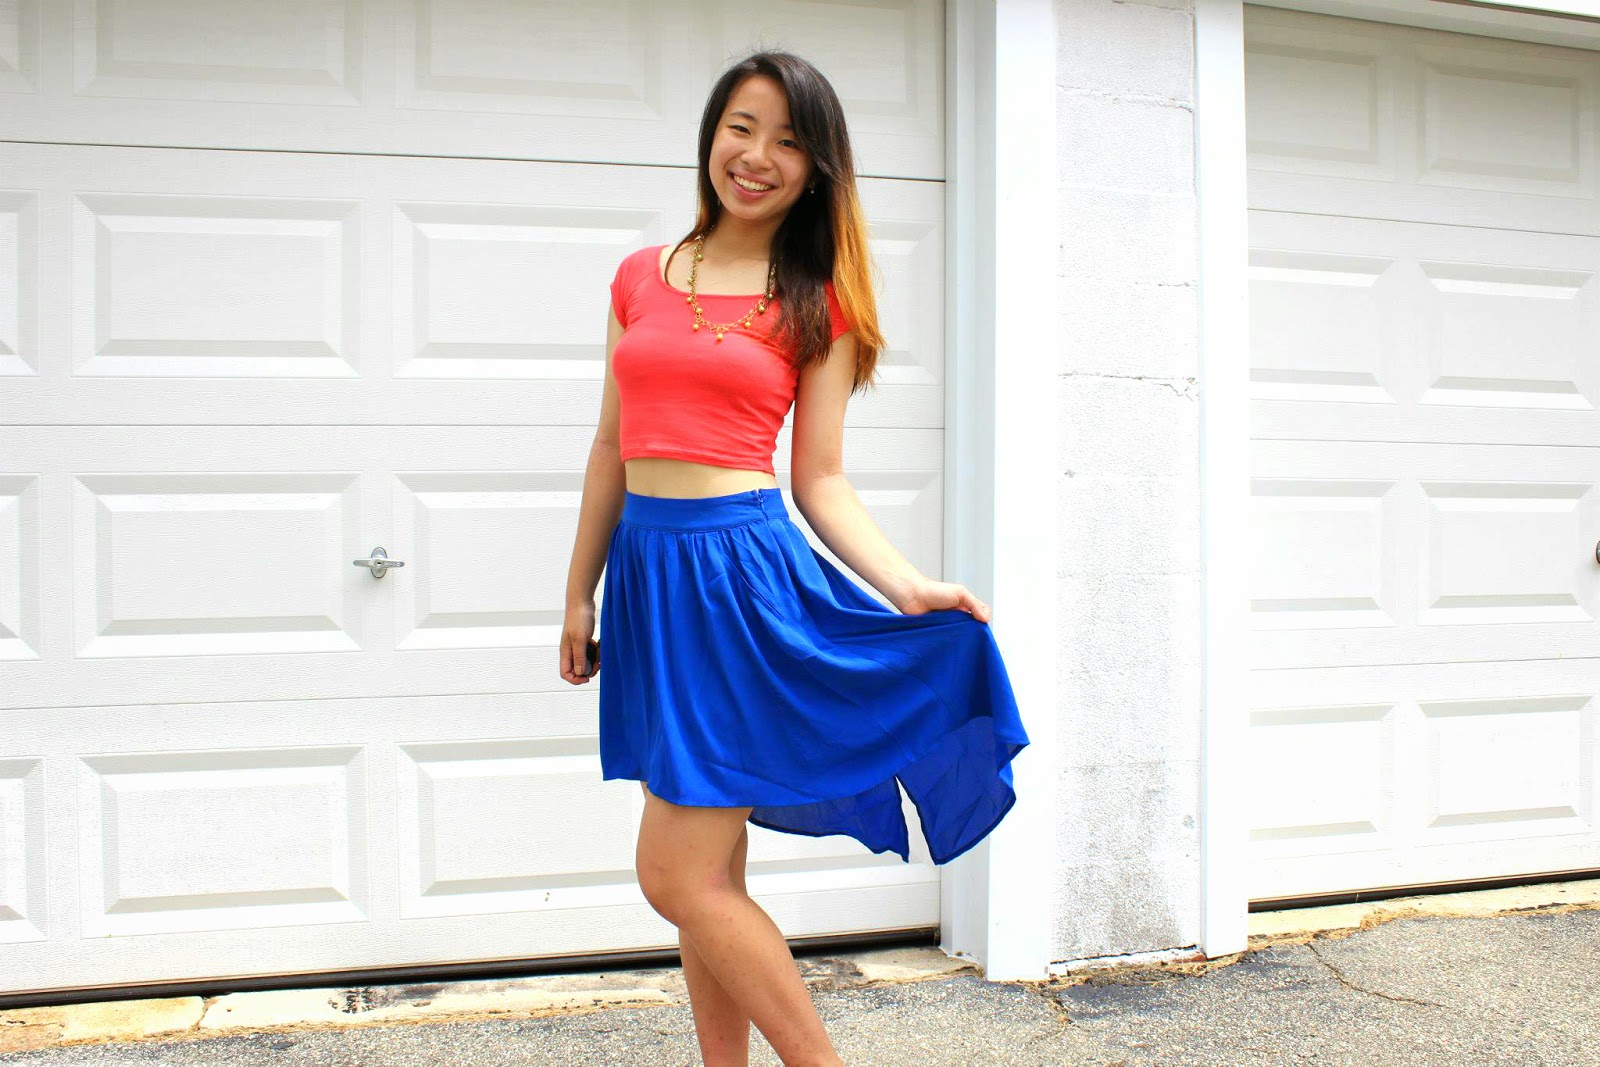 Fun and colorful spring outfit